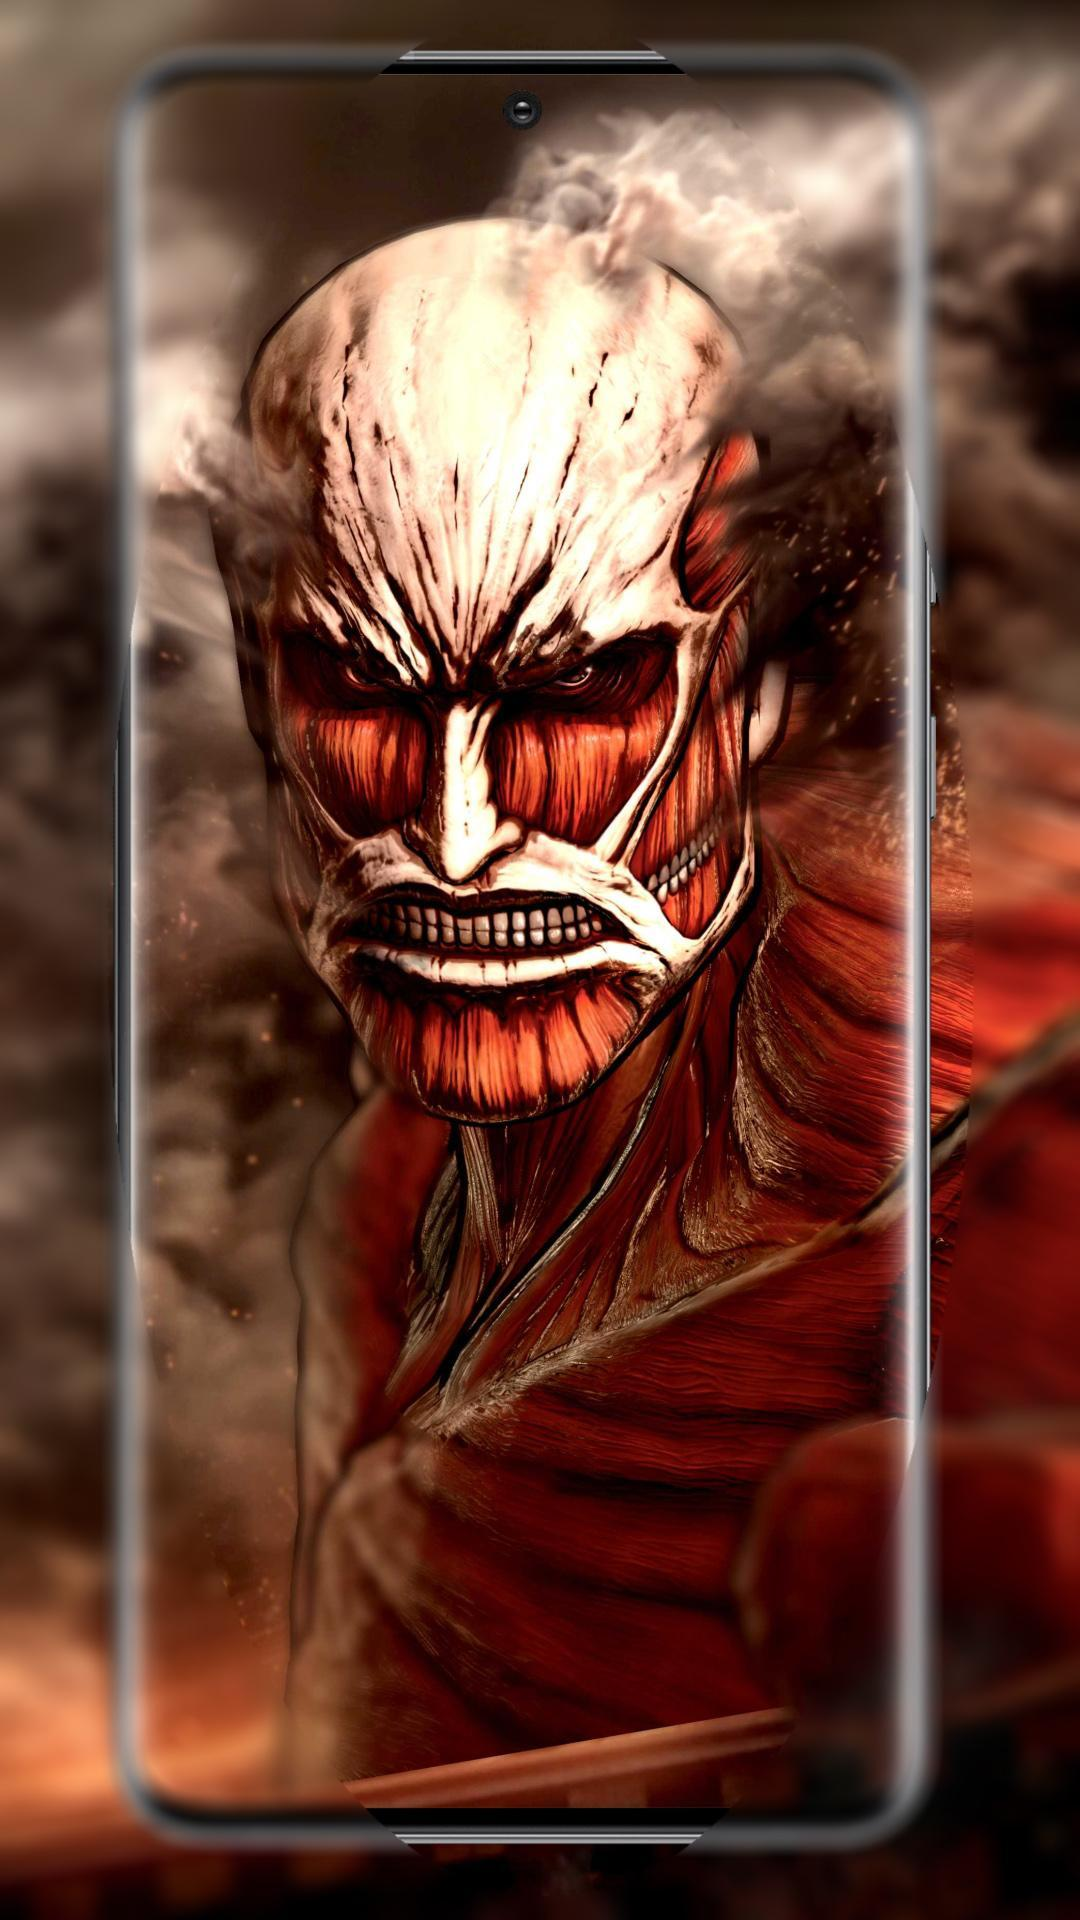 Aot Hd Wallpapers 2020 For Android Apk Download